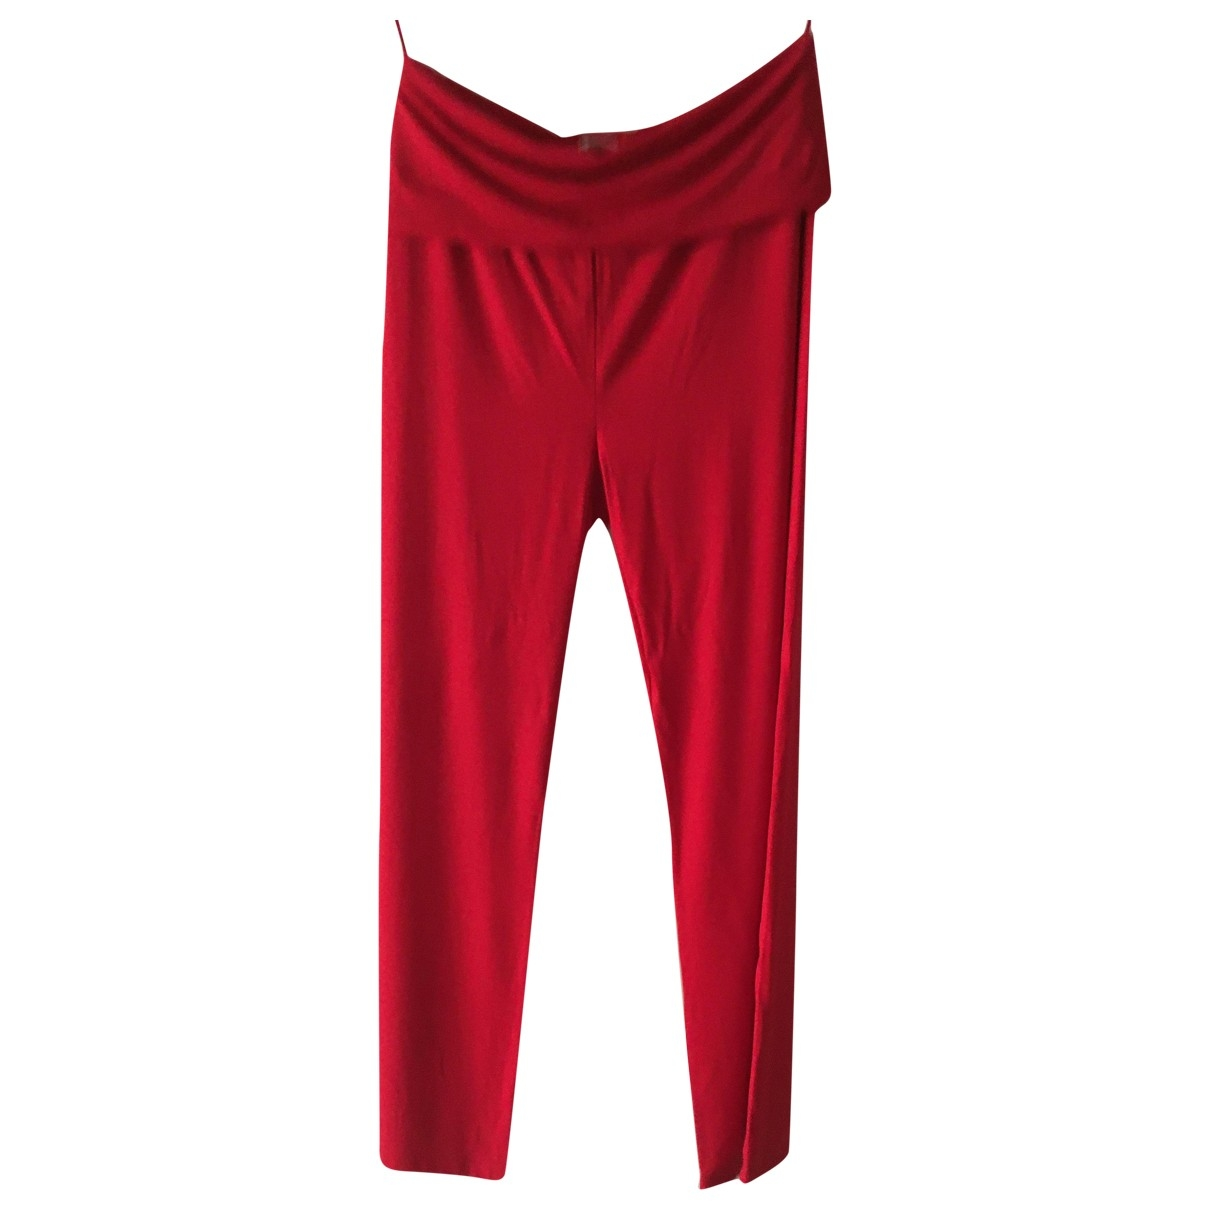 Max Mara \N Red Trousers for Women S International